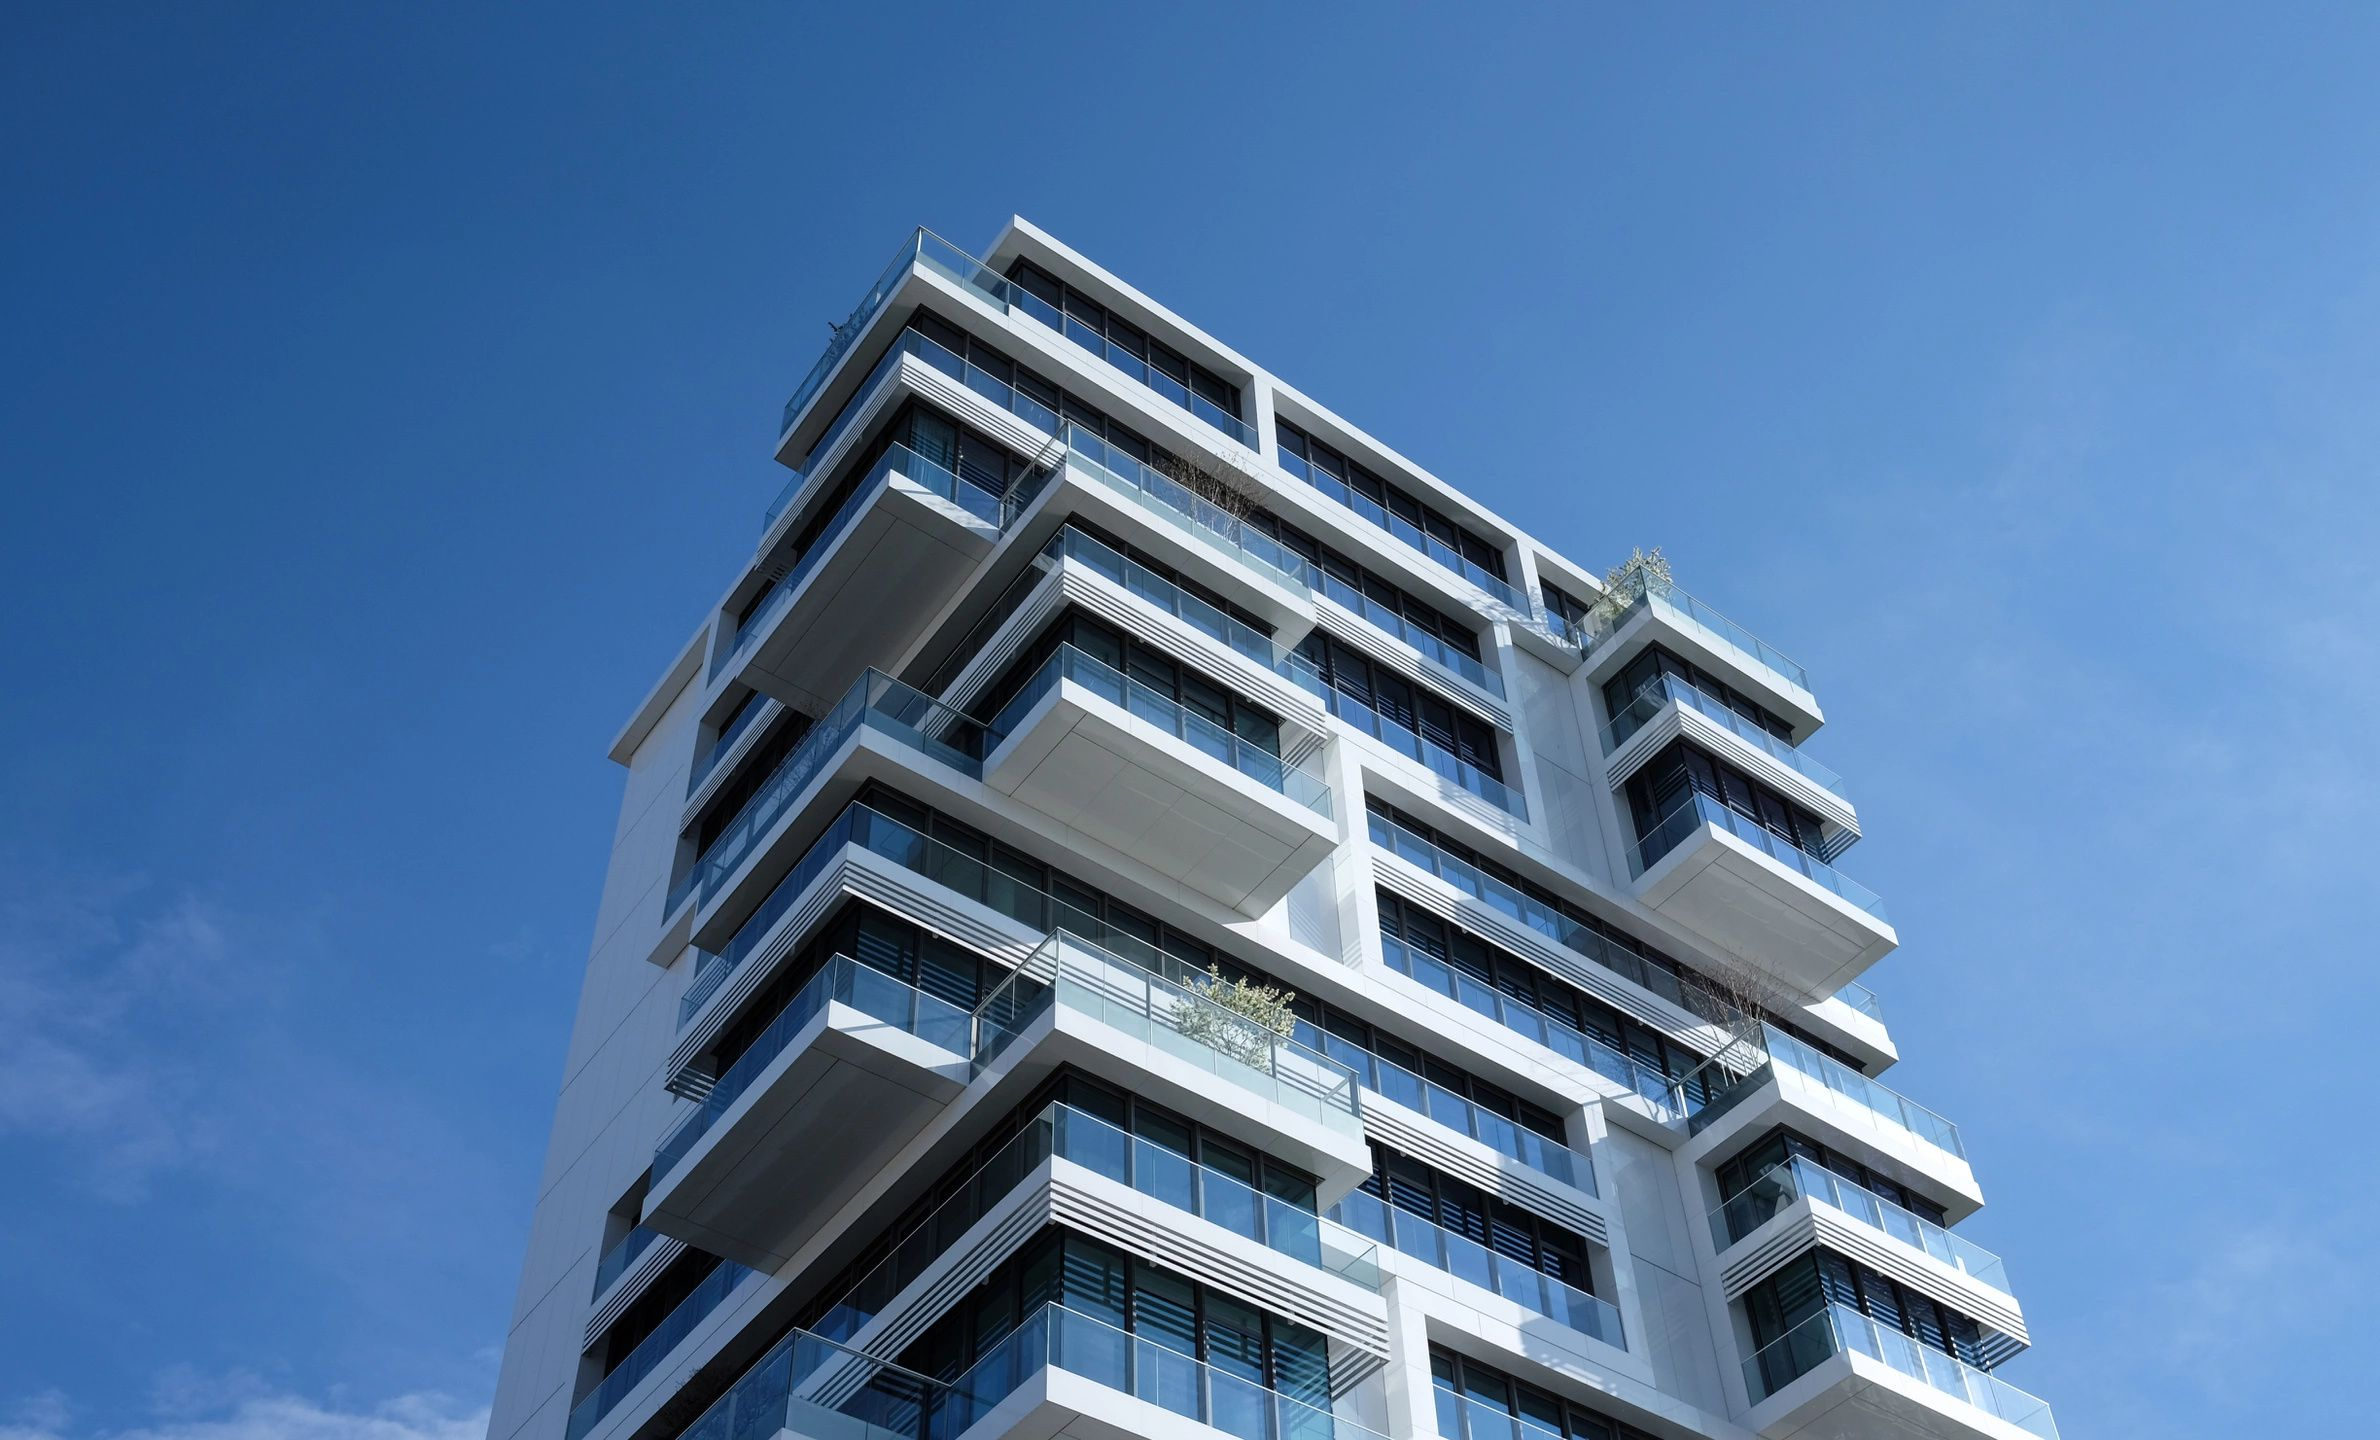 Modern Sustainable Building Architecture in South Florida